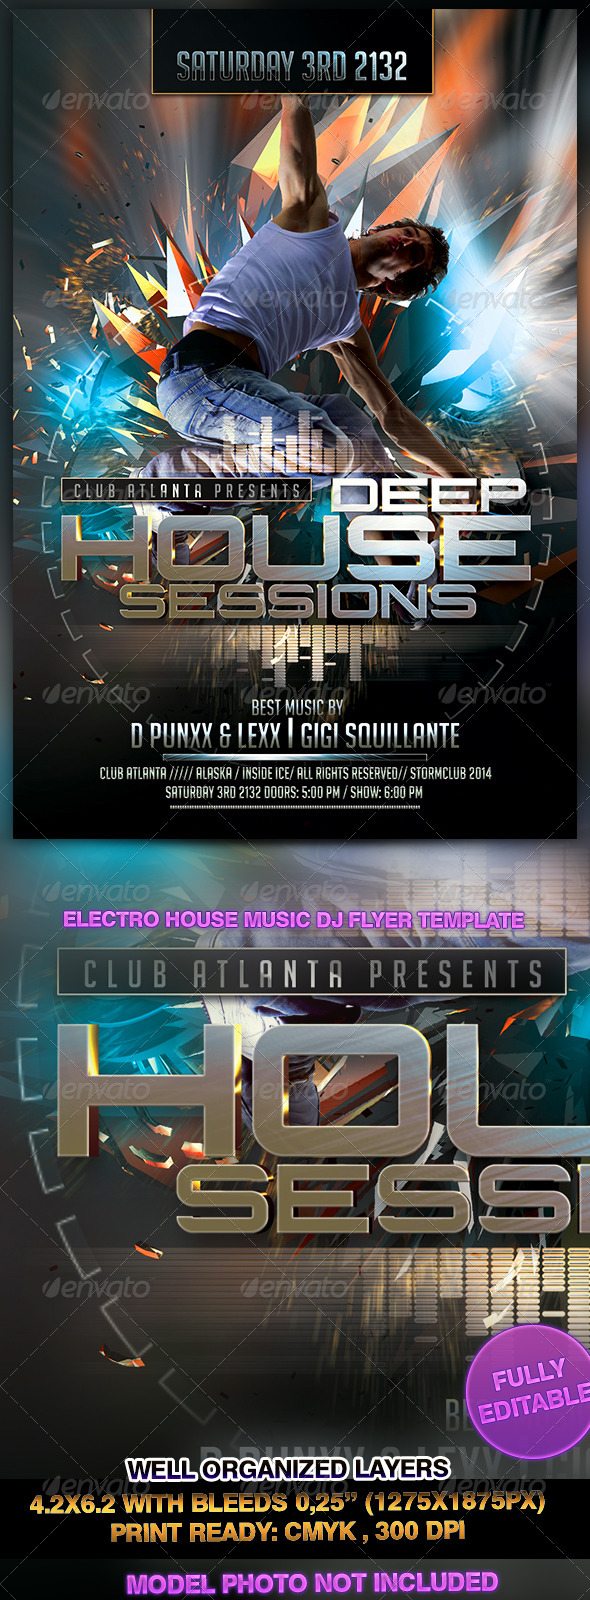 GraphicRiver Electro House Music DJ Flyer Template 7263007